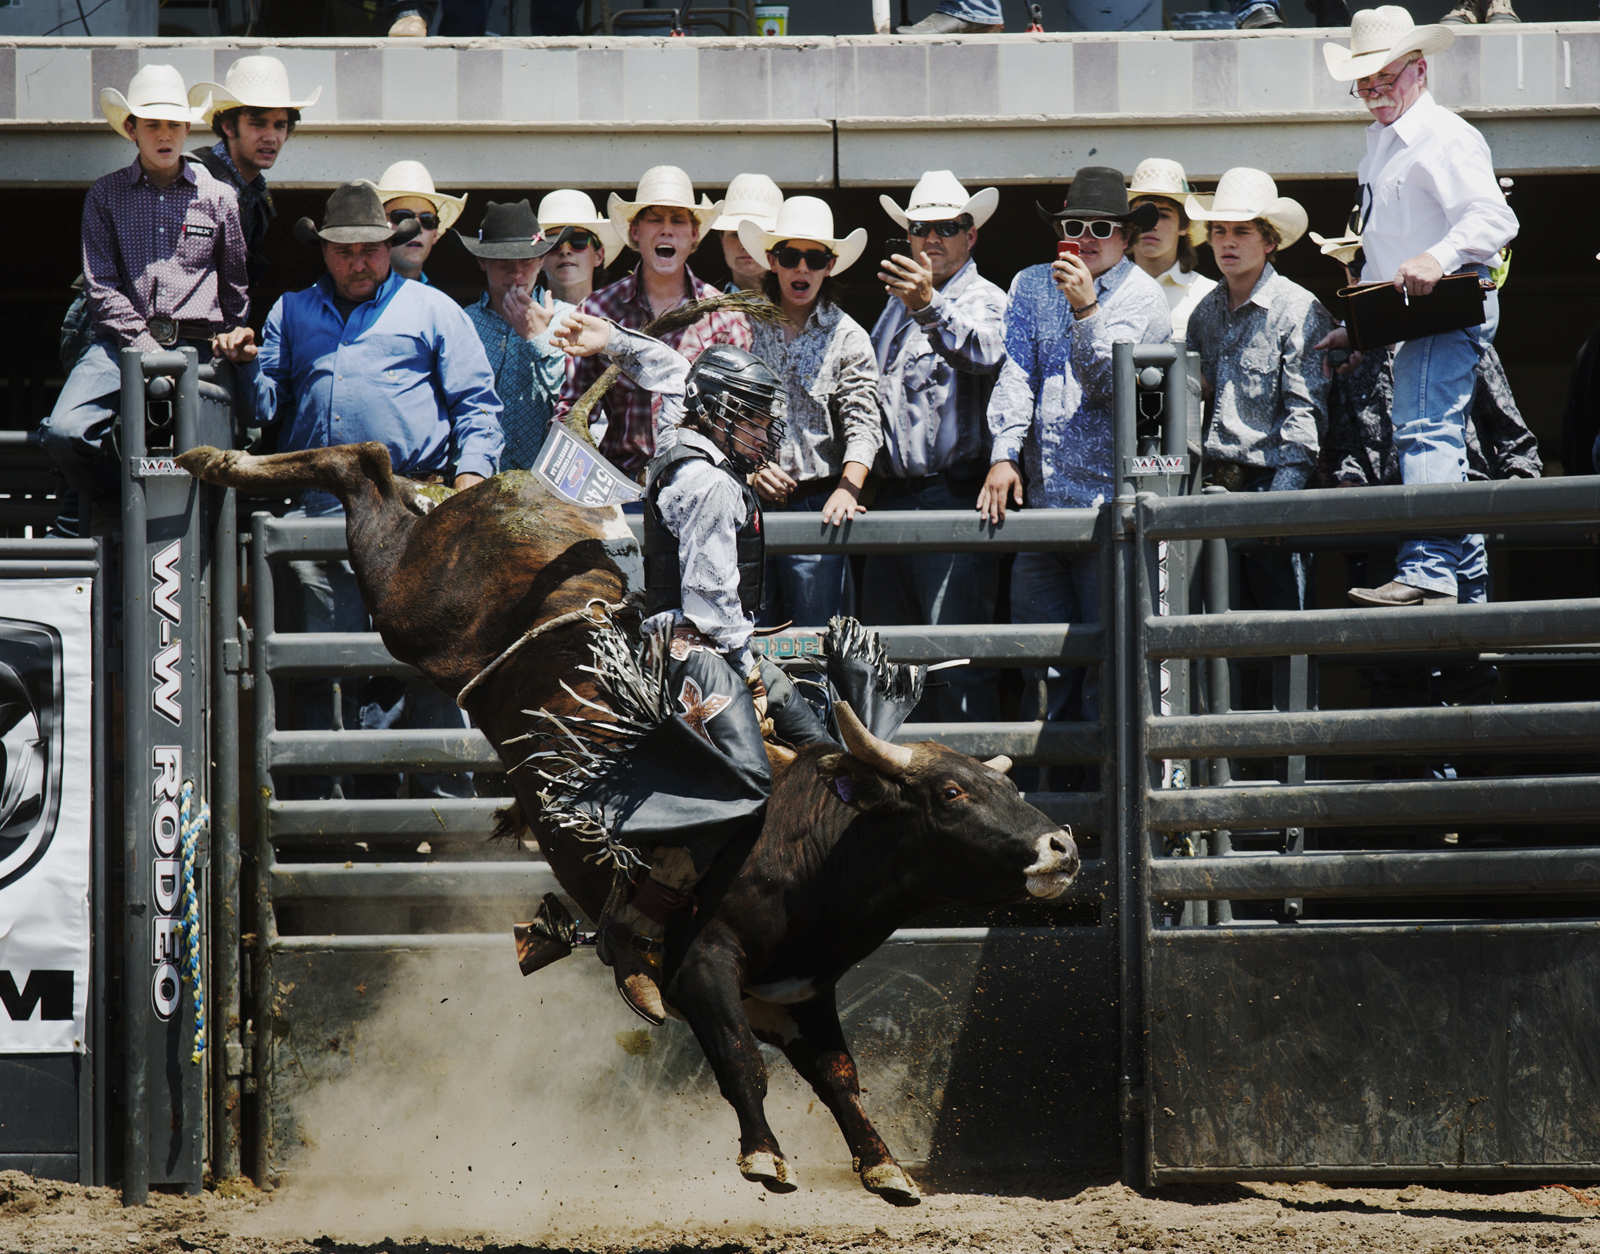 Spectators watch Austin Canezaro's run during the Junior Bull Riding competition Monday, July 22 2013 at the Little Britches Final Rodeo at the State Fairgrounds. Canezaro went on to take fifth place in the final.